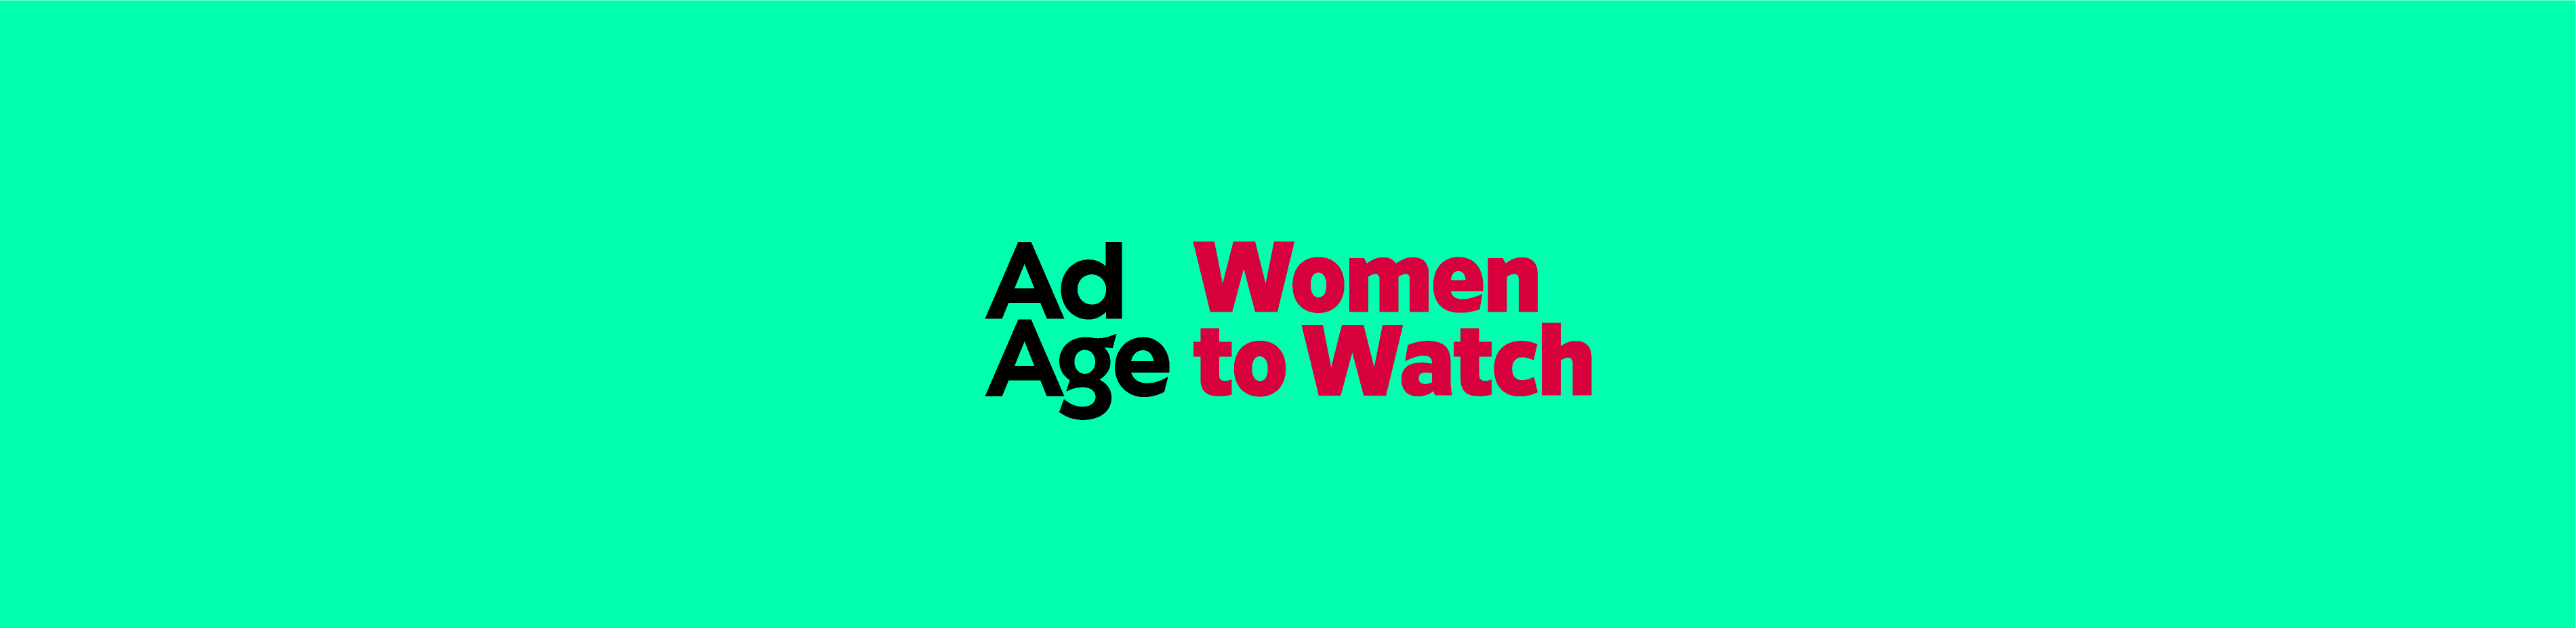 Ad Age Women To Watch